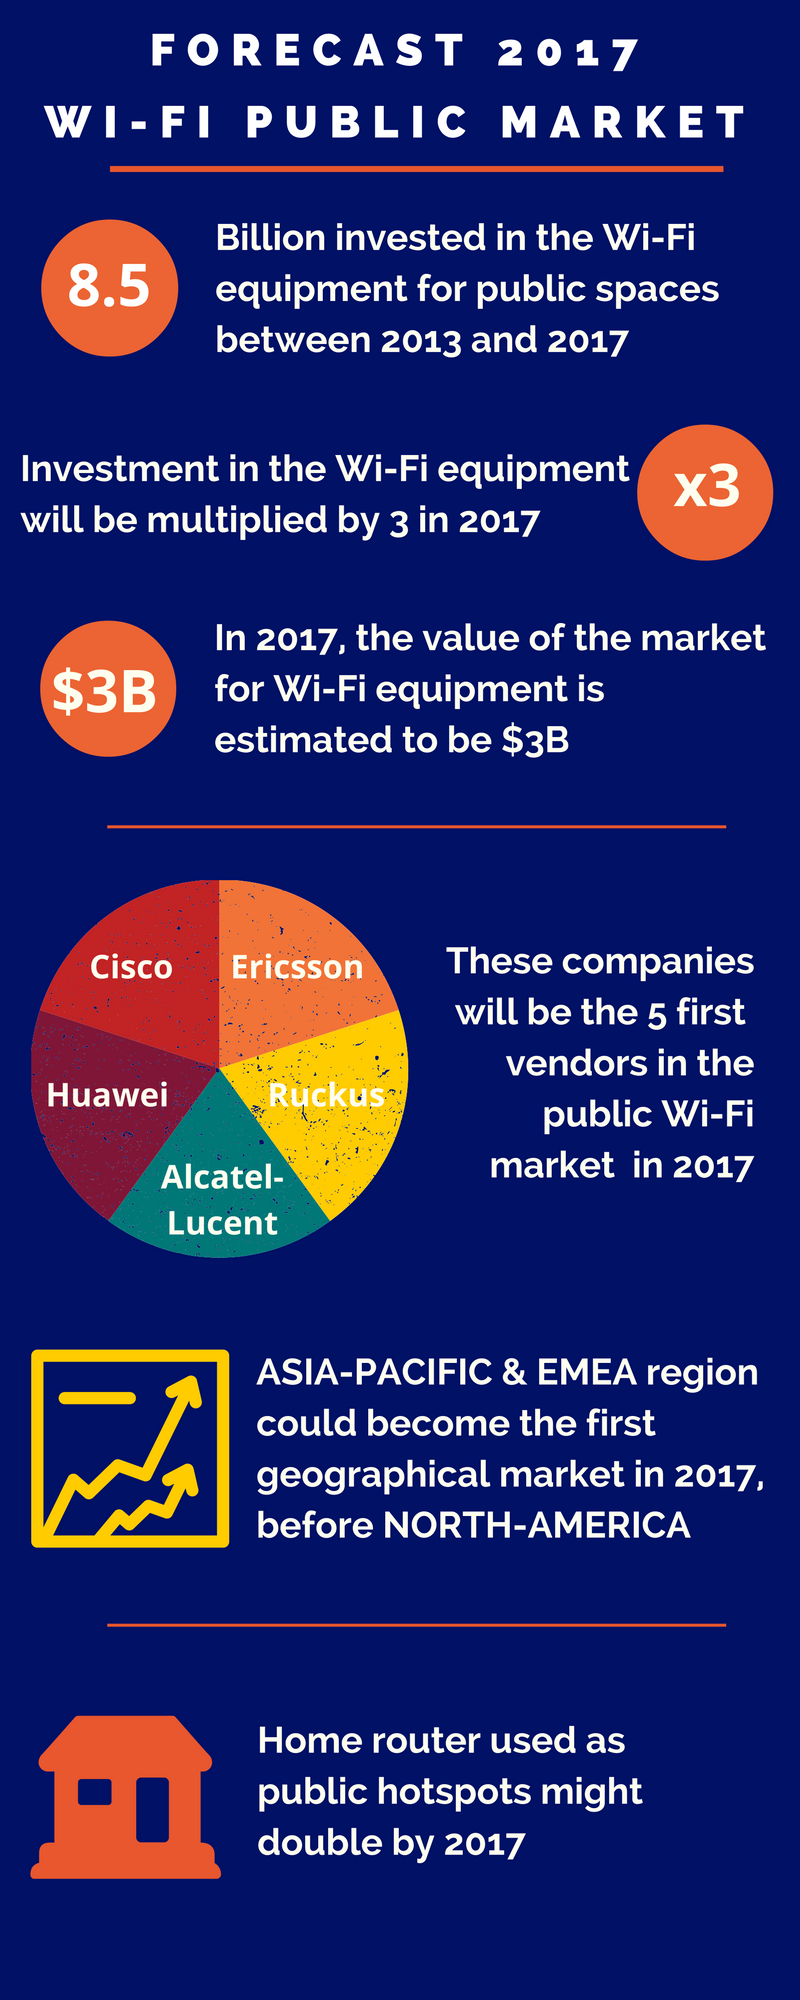 Investments in Wi-Fi equipment are going to be multiplied by 3 in 2017. Companies like Cisco, Ericsson, Huawei and Ruckuswill be the first to benefit from this increase. - Infographic about the market in 2017